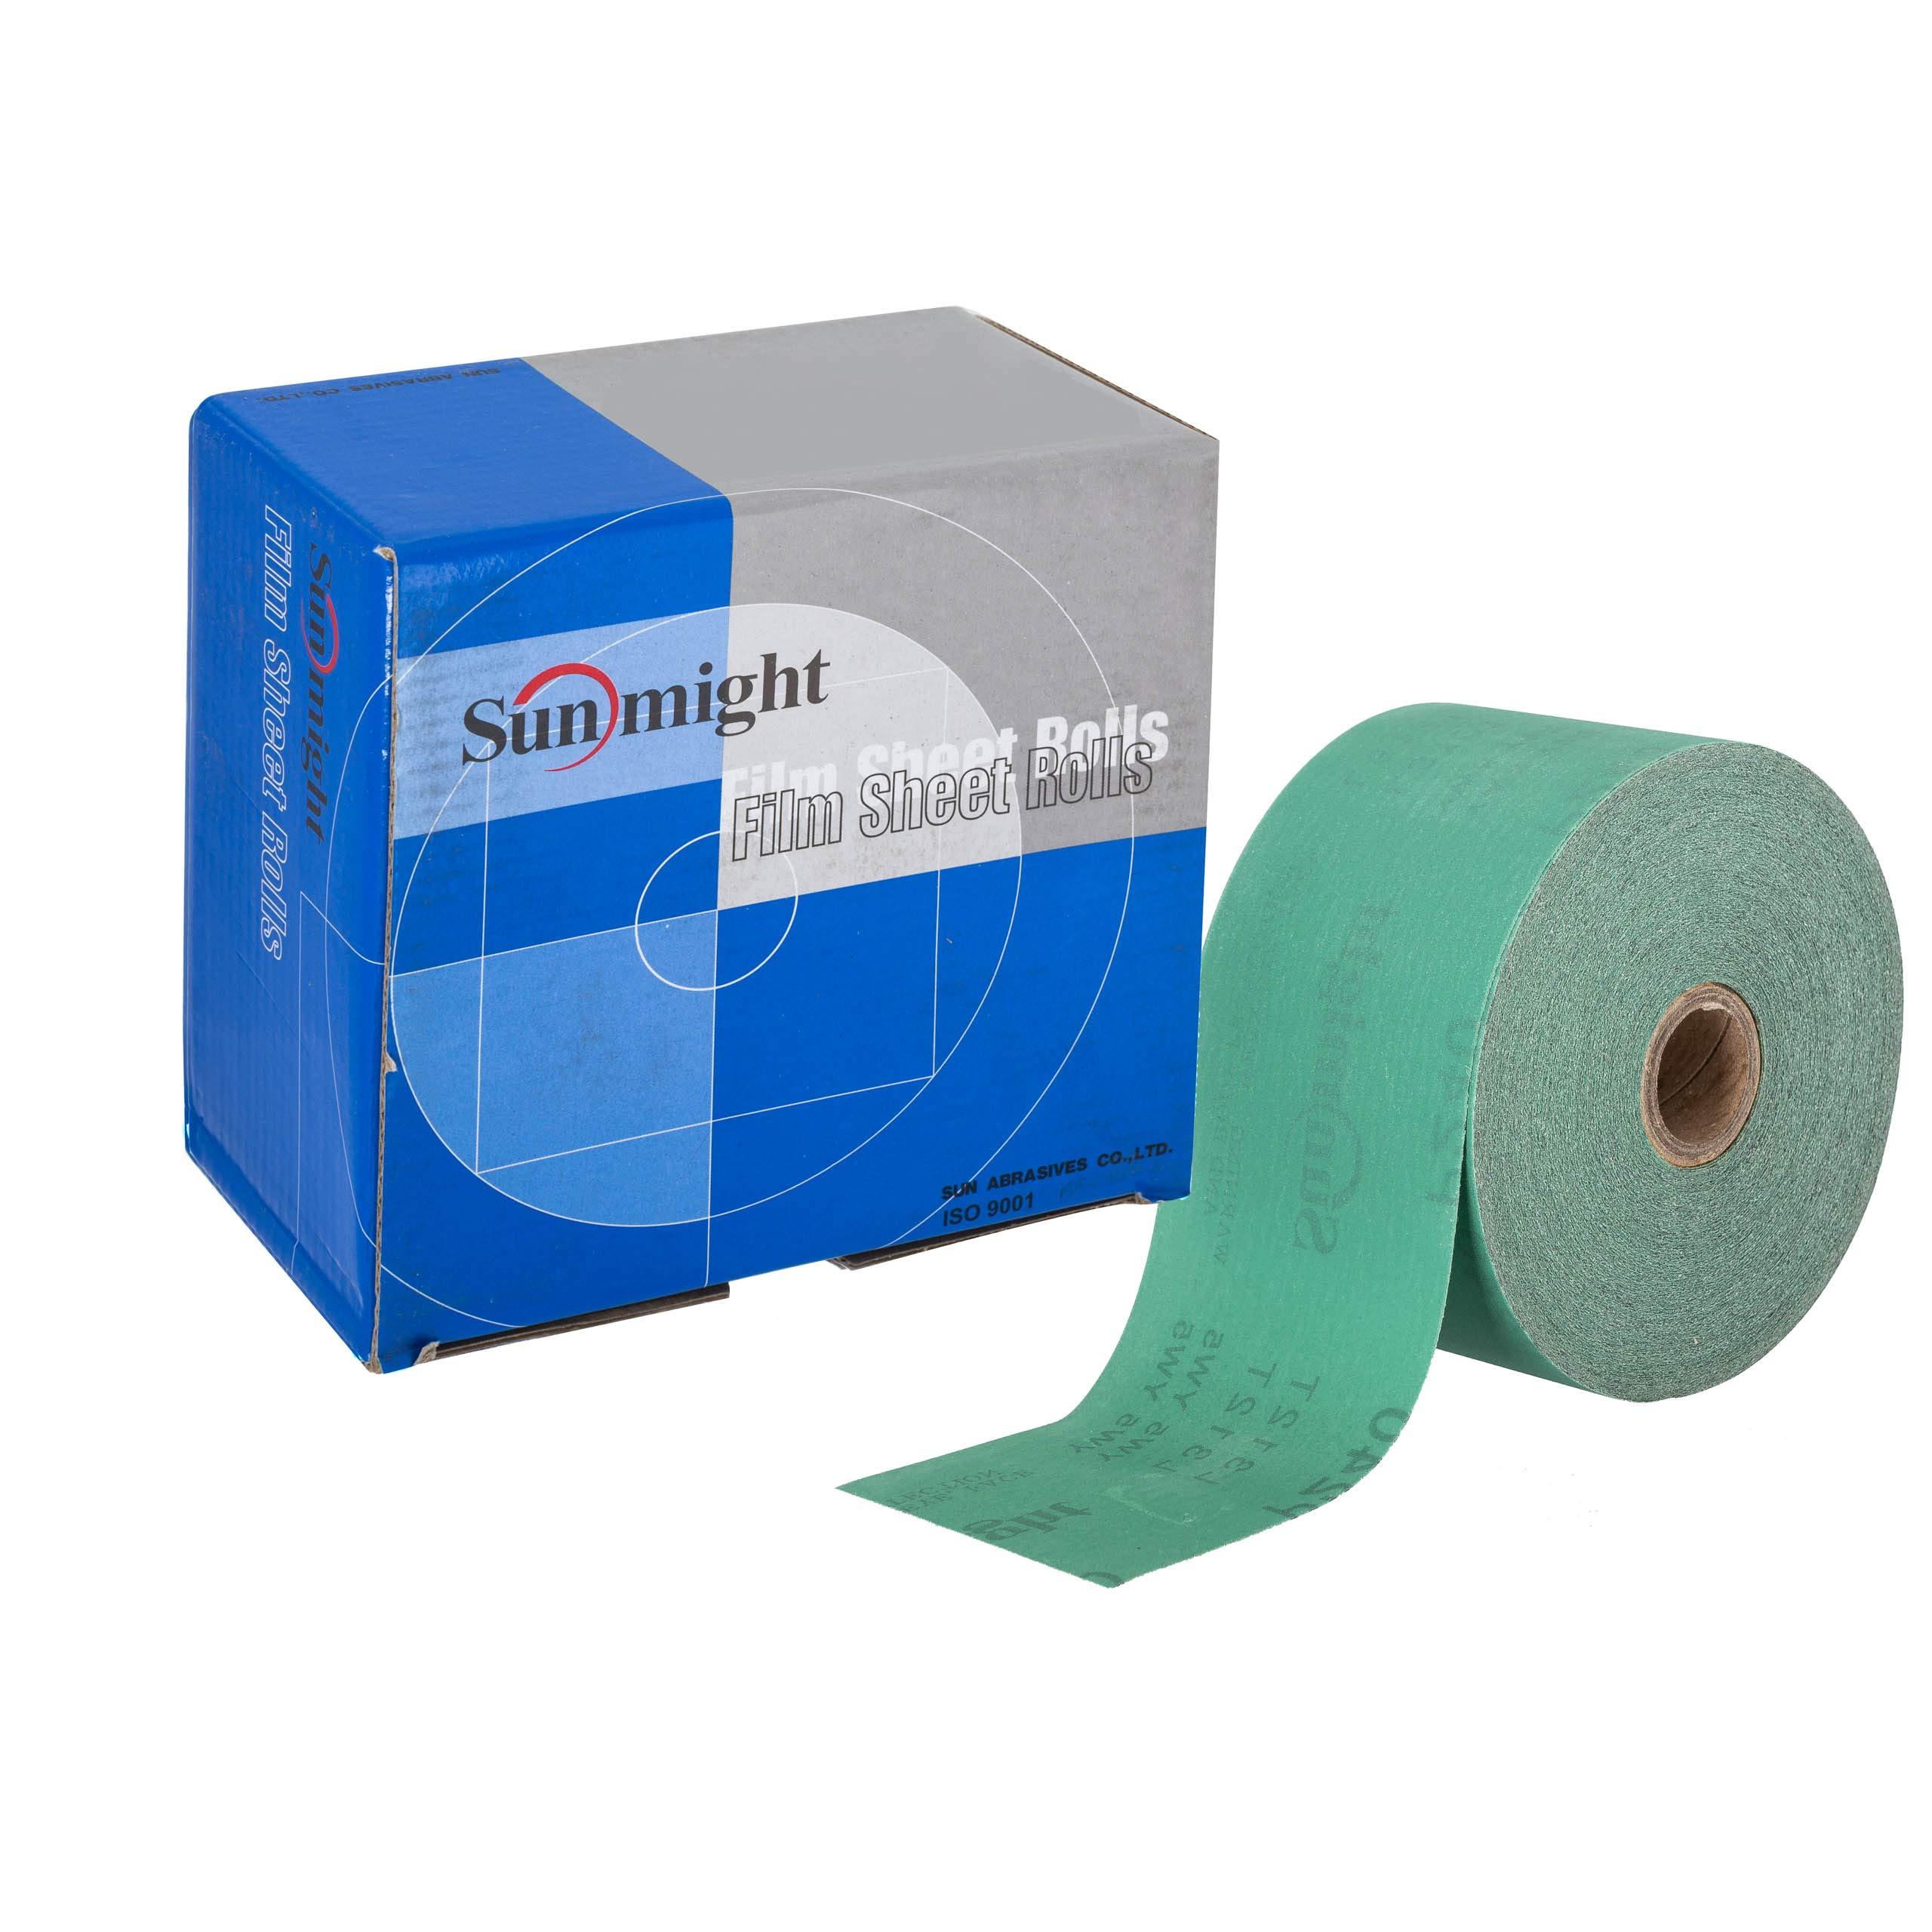 Sunmight 22111 1 Pack 2-3/4'' X 45 yd PSA Sheet Roll (Film Grit 220) by Sunmight